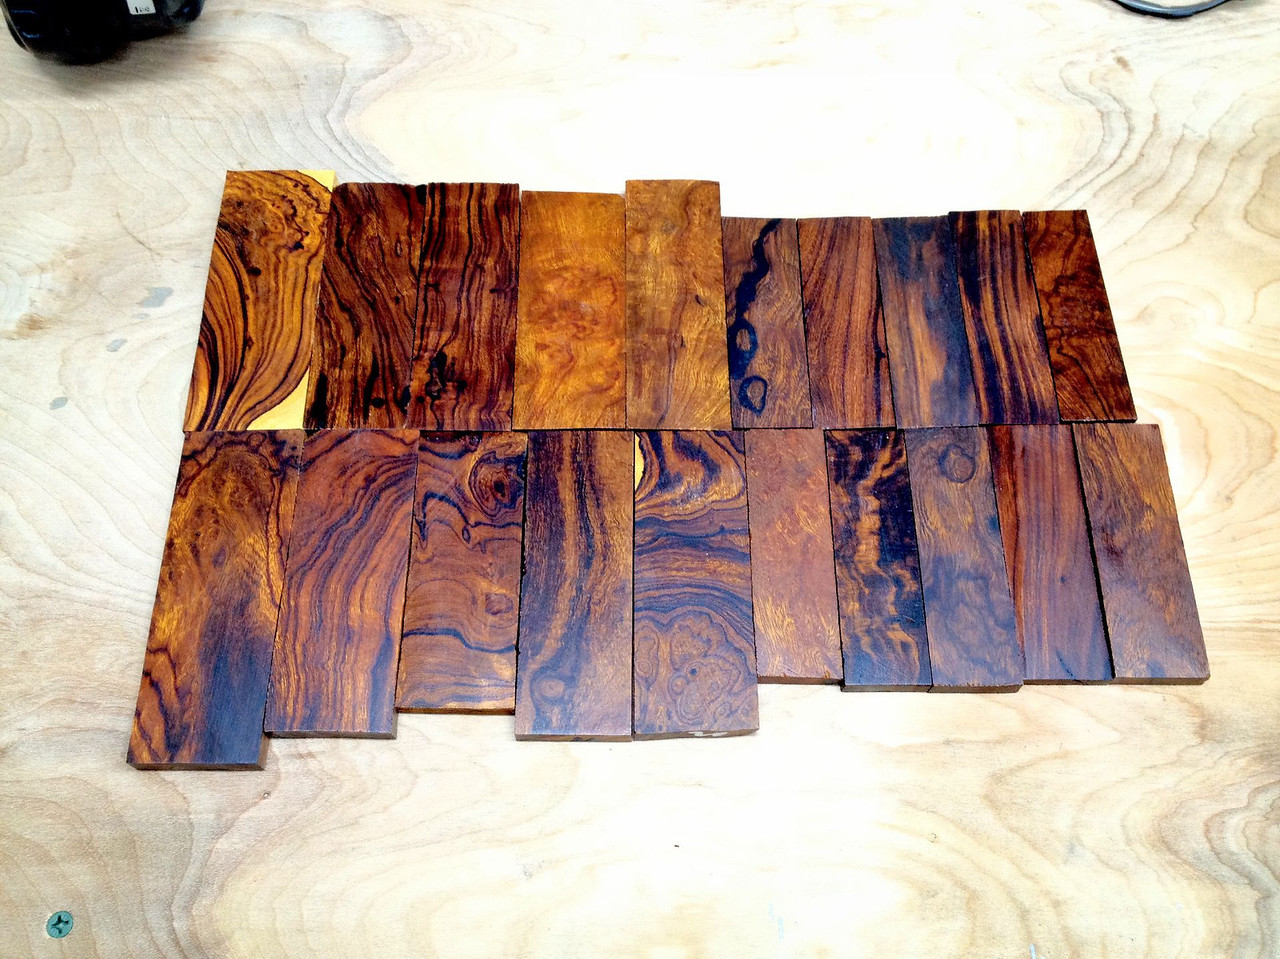 I also received a shipment of ironwood today.  Man, I love this stuff.